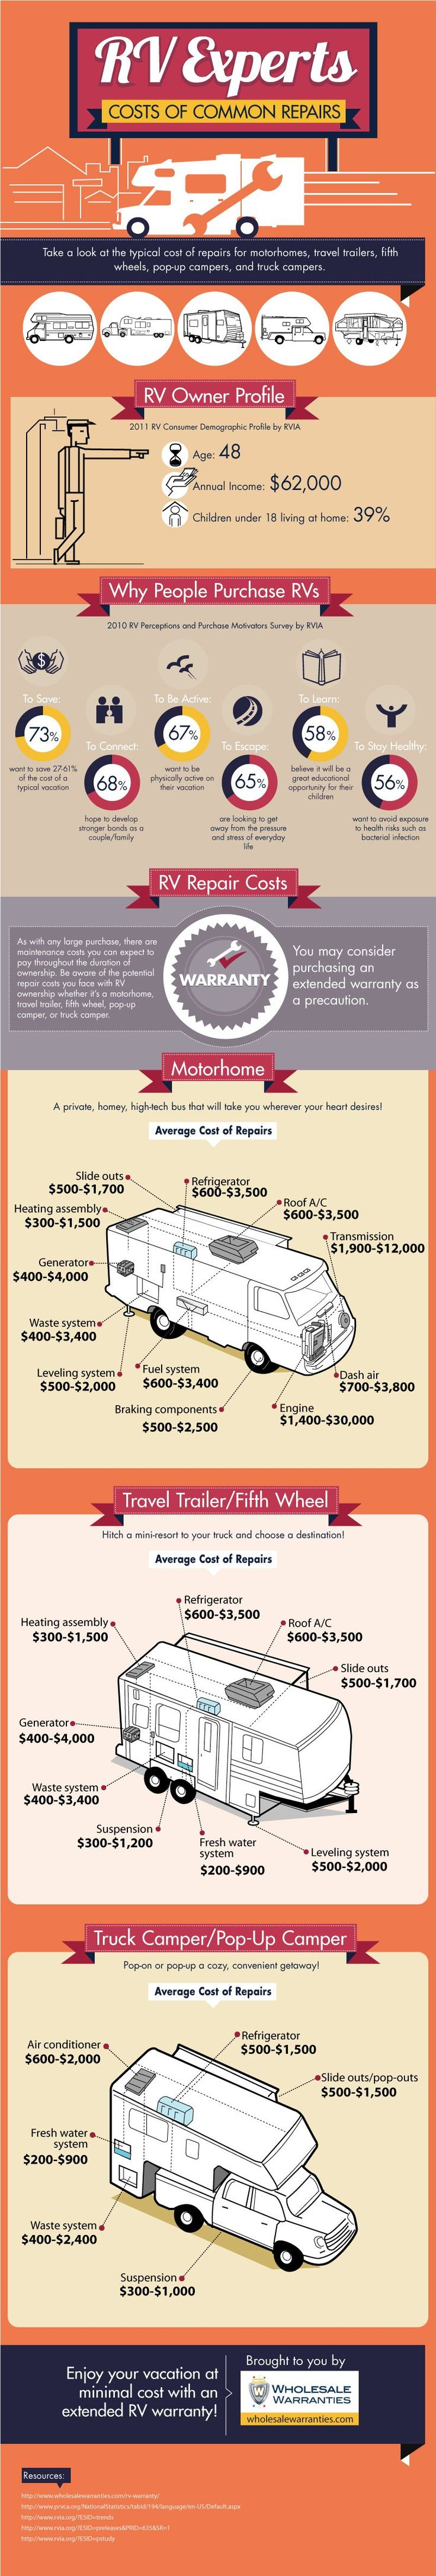 Ever wondered how much it would cost to repair an RV? Check this infographic on typical repair costs on motorhomes, travel trailers, fifth wheels, pop-up campers and truck campers.